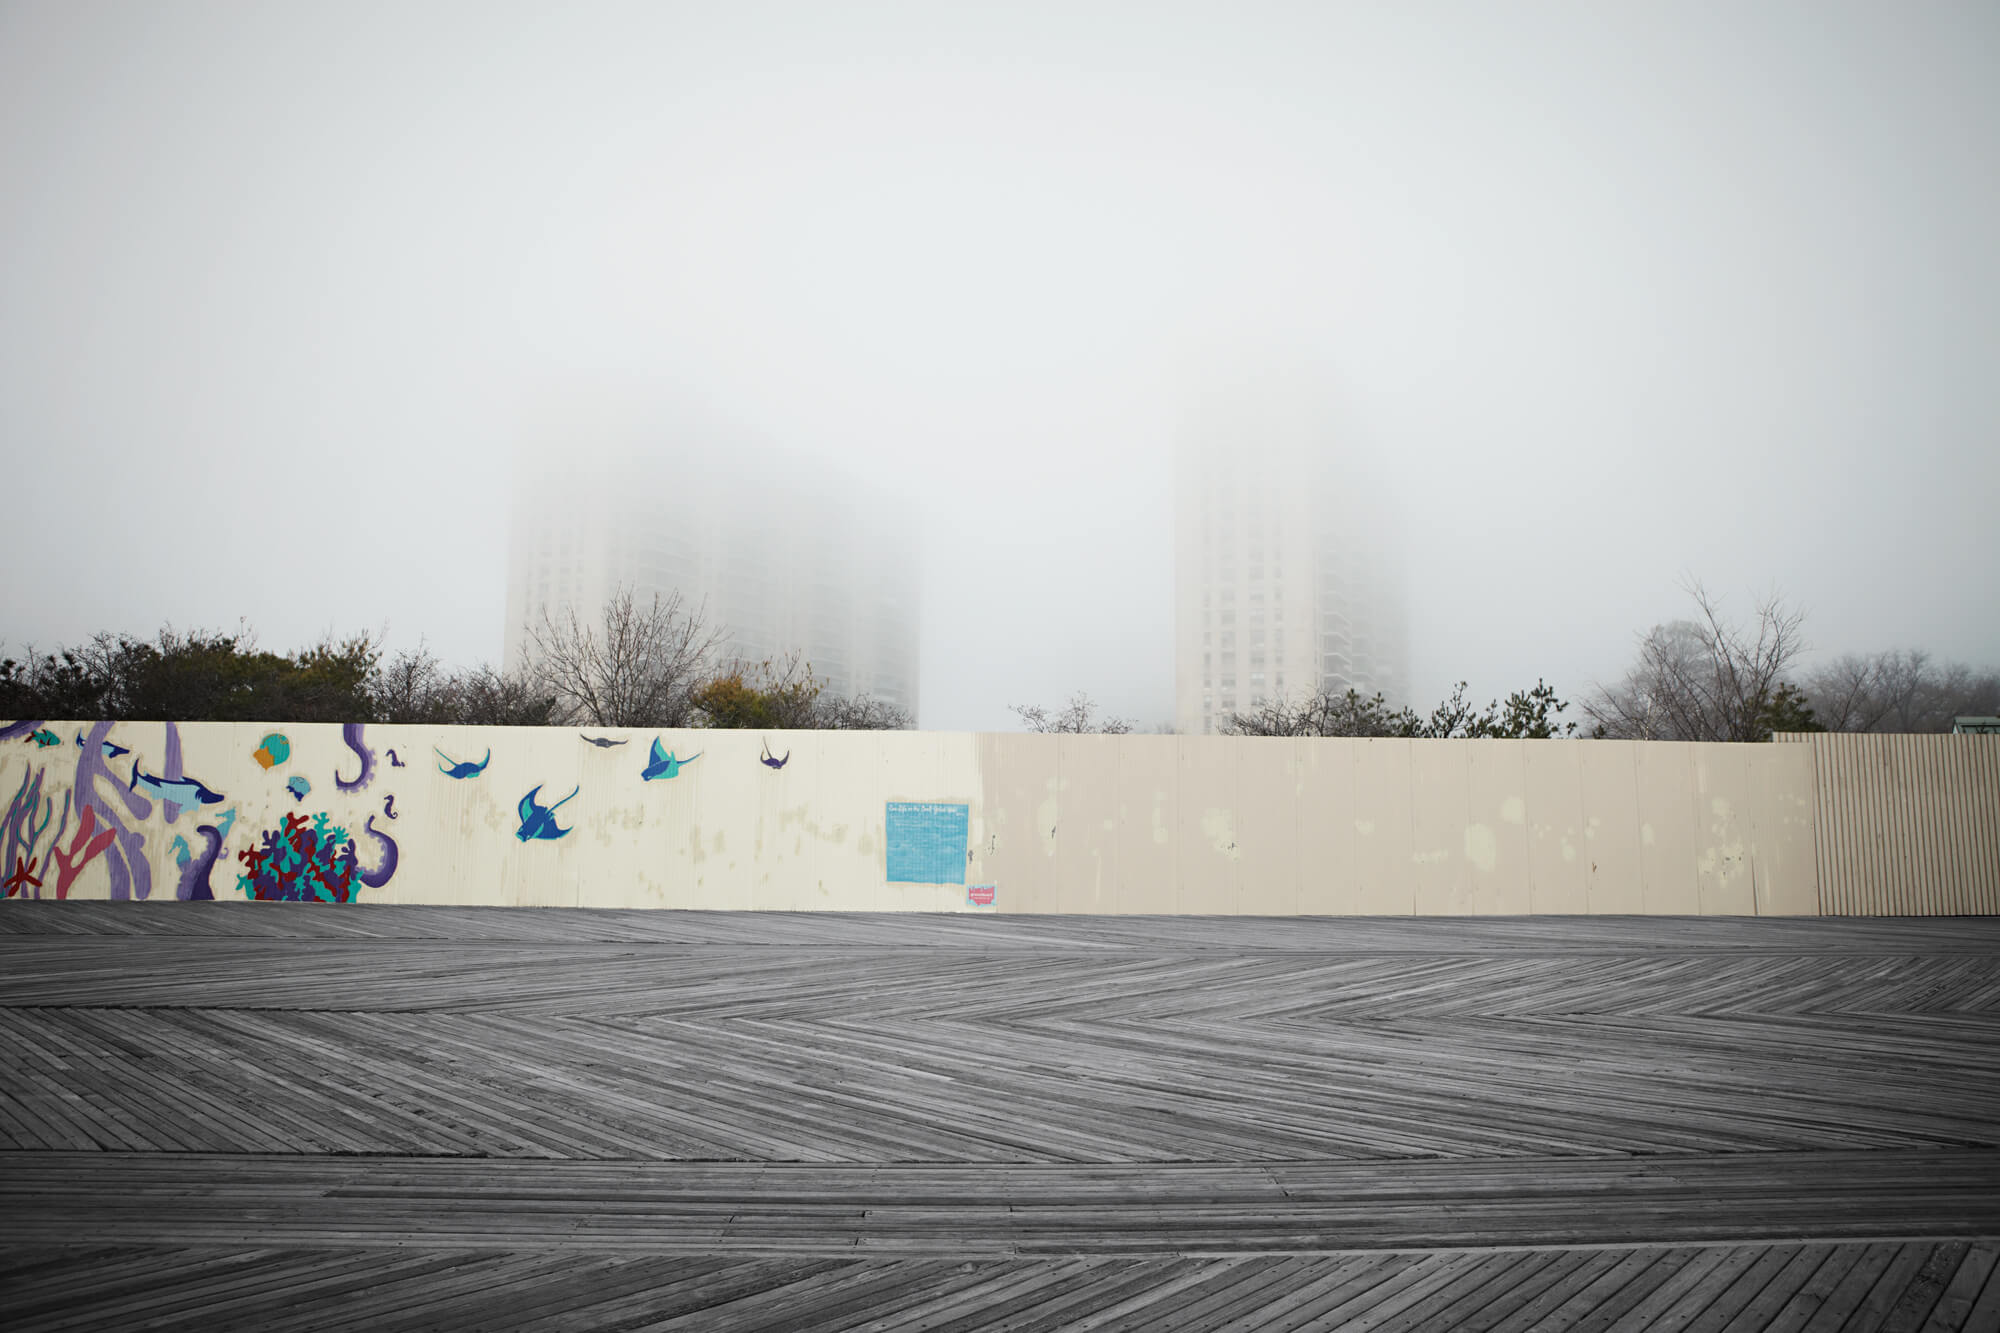 Unified Content, Unified Content Toronto, Aaron Cobb, Coney Island, Winter and Summer, Beach, Seasons, Desolate, busy, landscape, photography, advertising, Click to see full project details